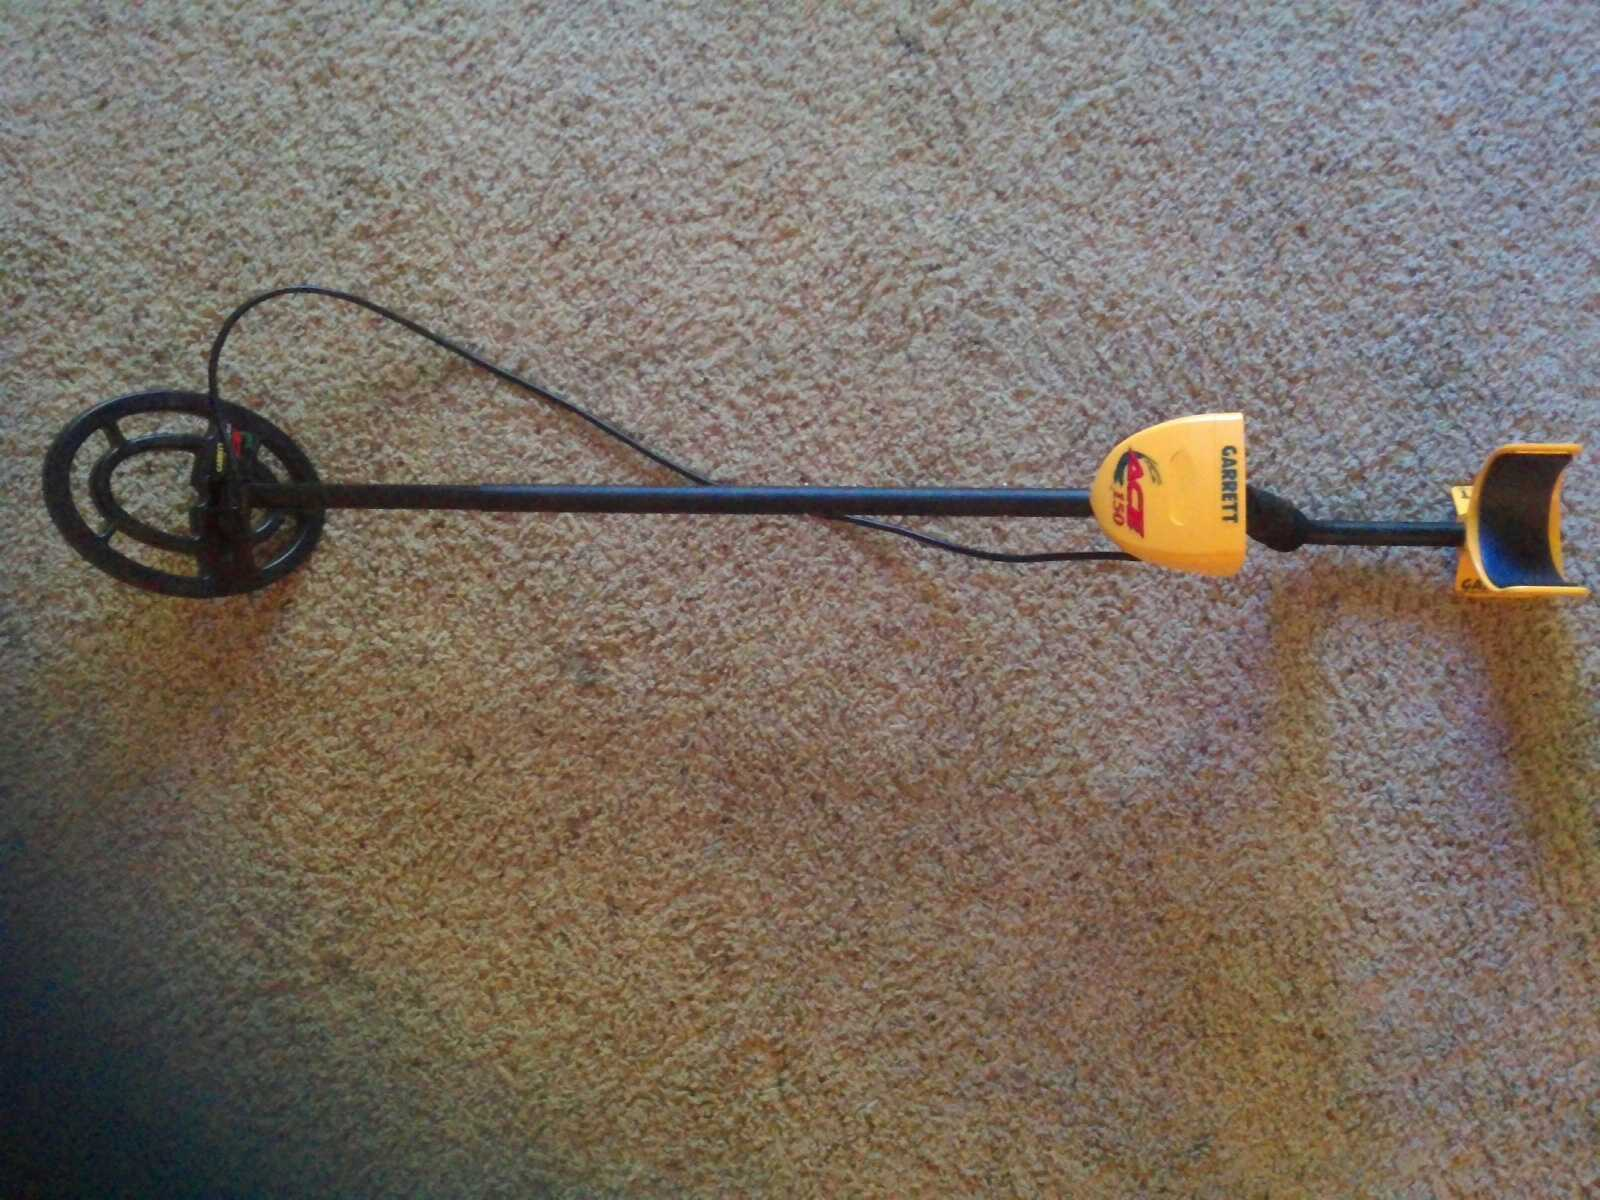 My review of the Garrett ace 150 metal detector